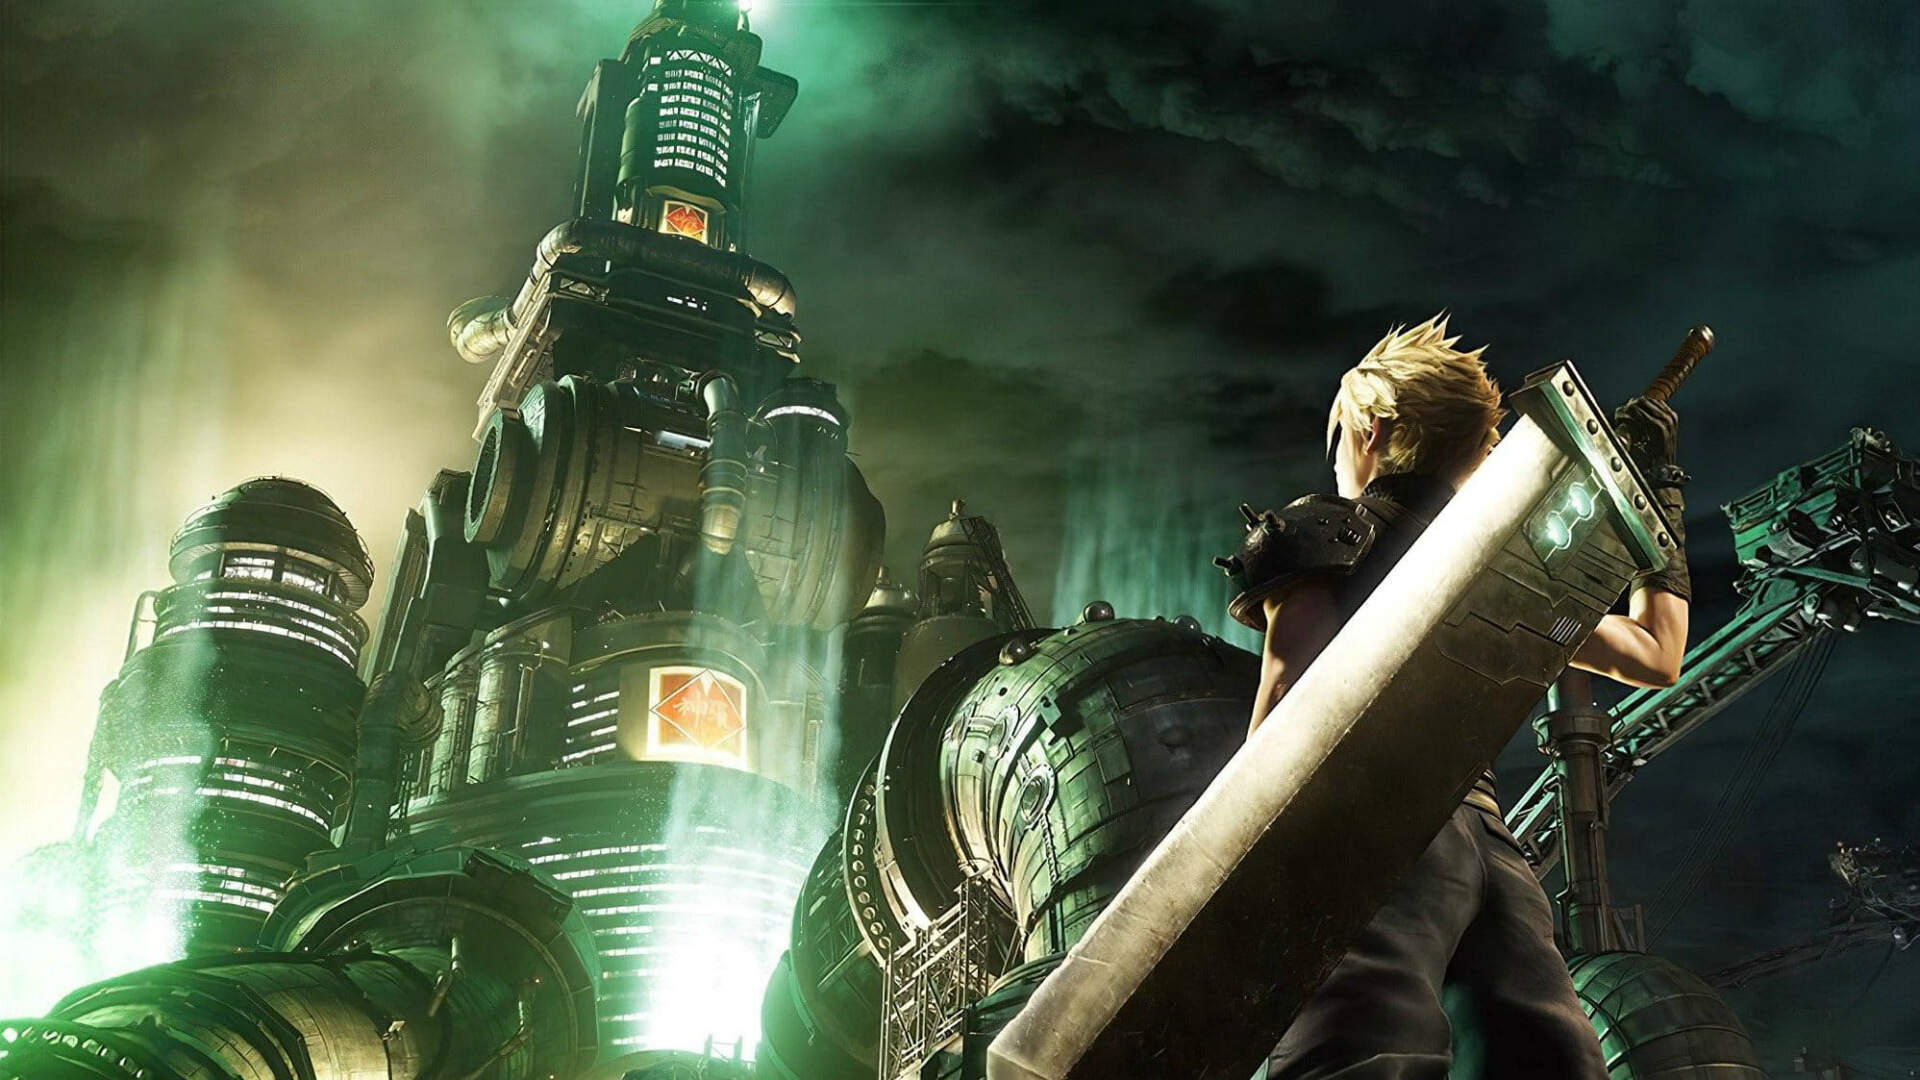 Final Fantasy 7 Remake's Game Awards Trailer Will Apparently Fill Us in on This Cloud Guy